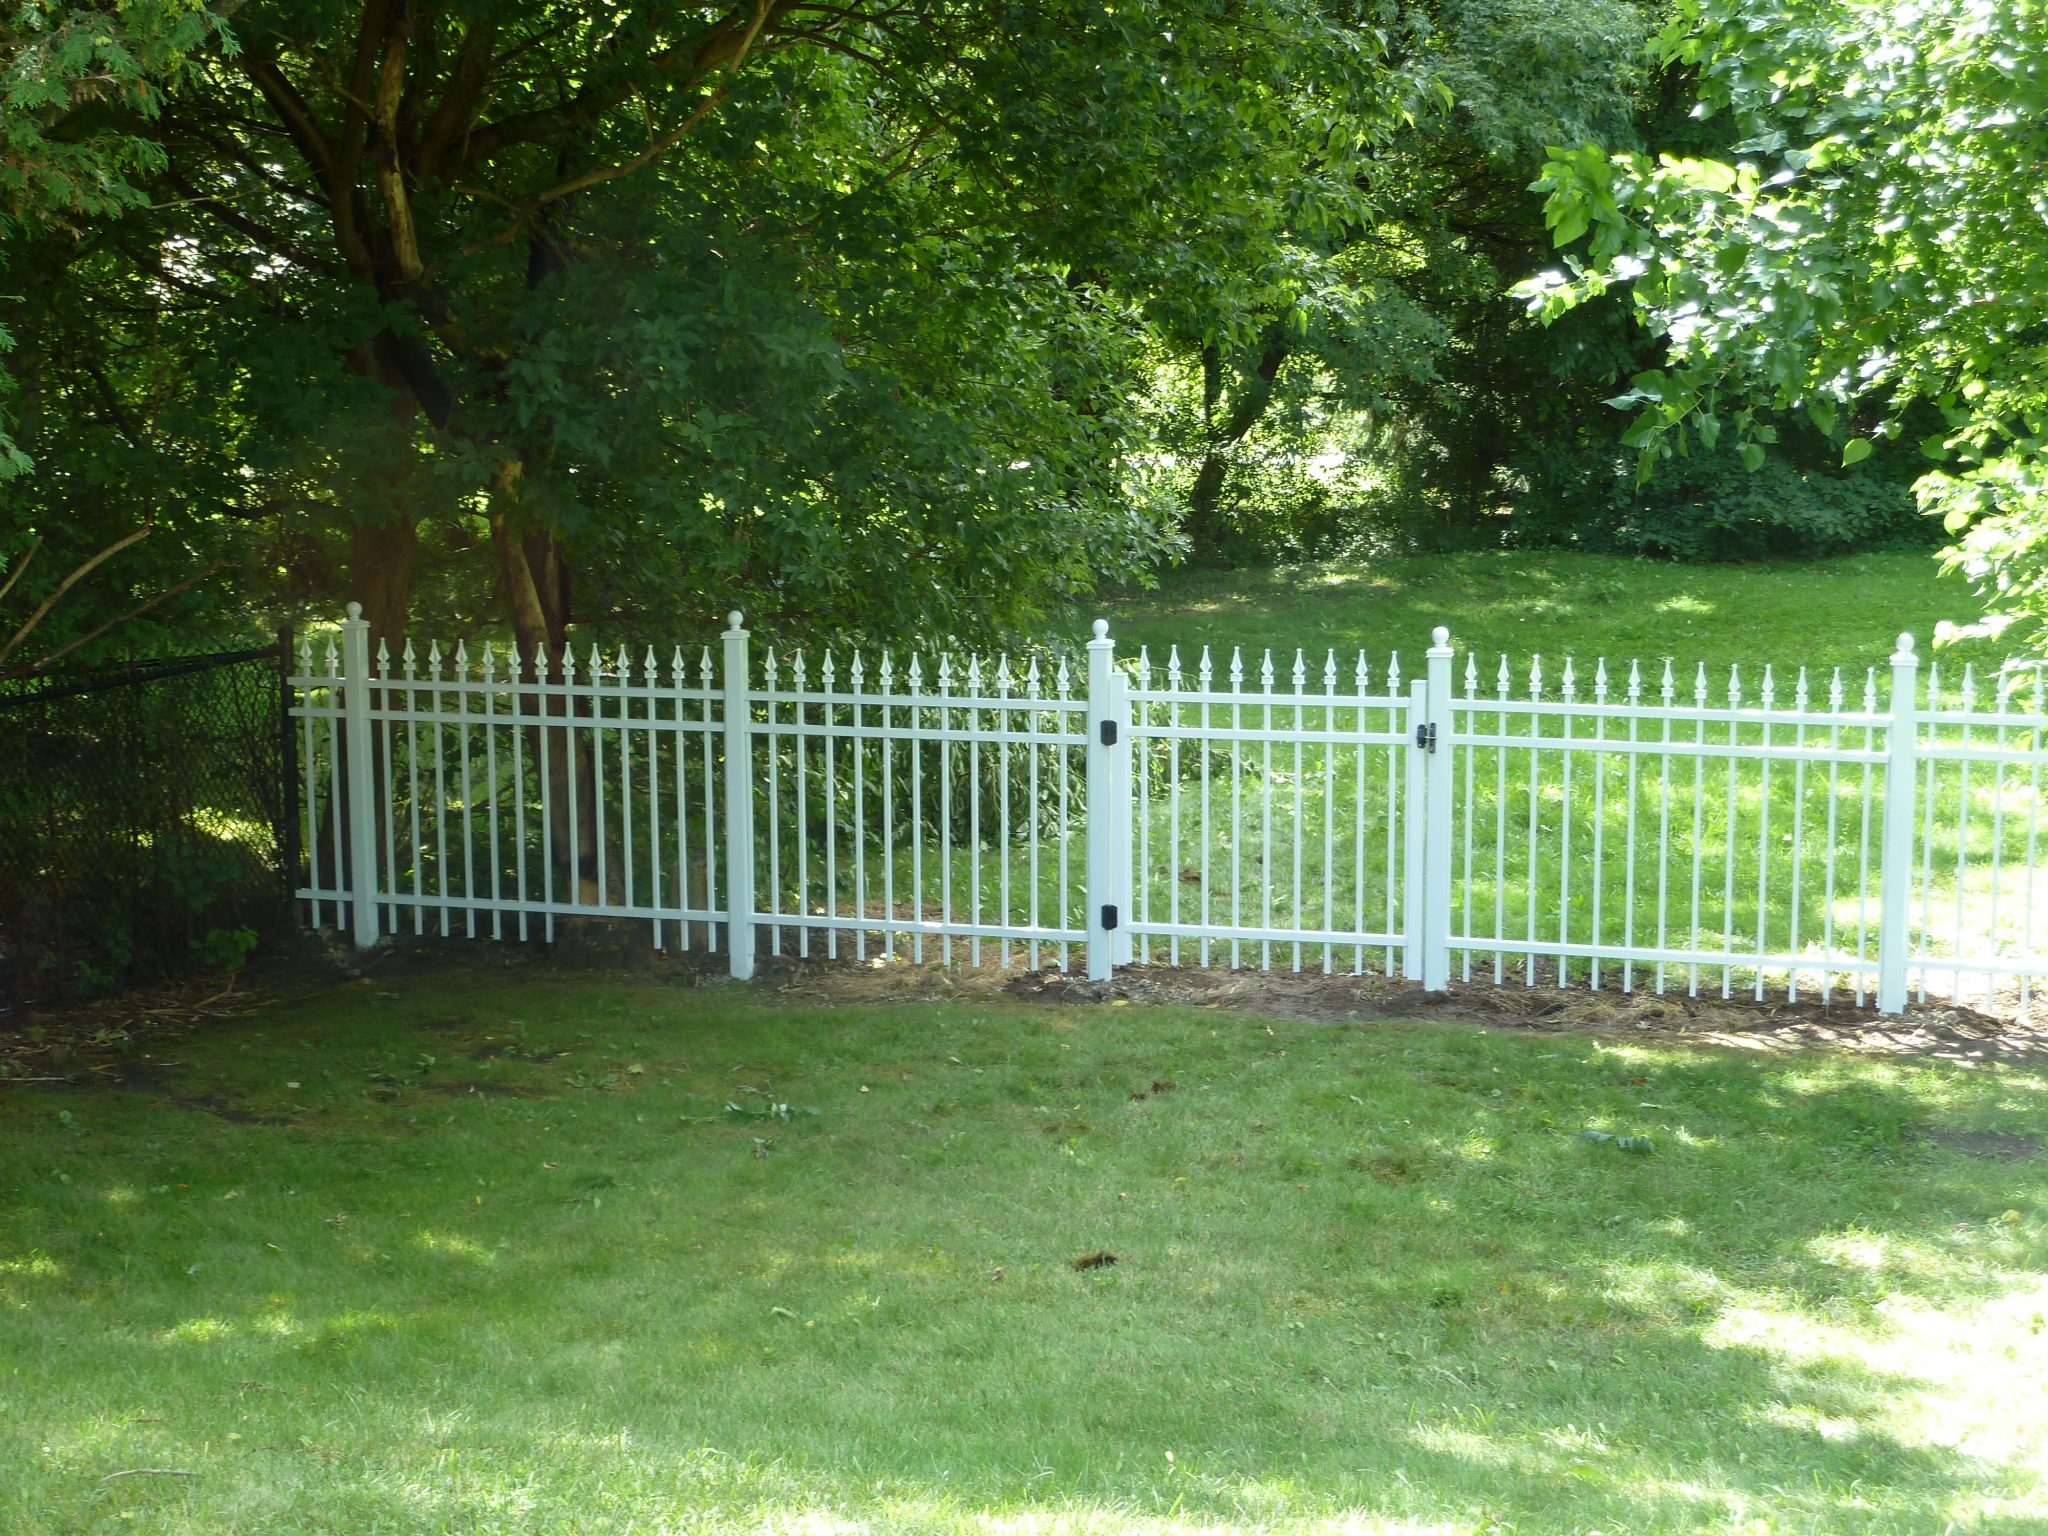 Picket fence of aluminum